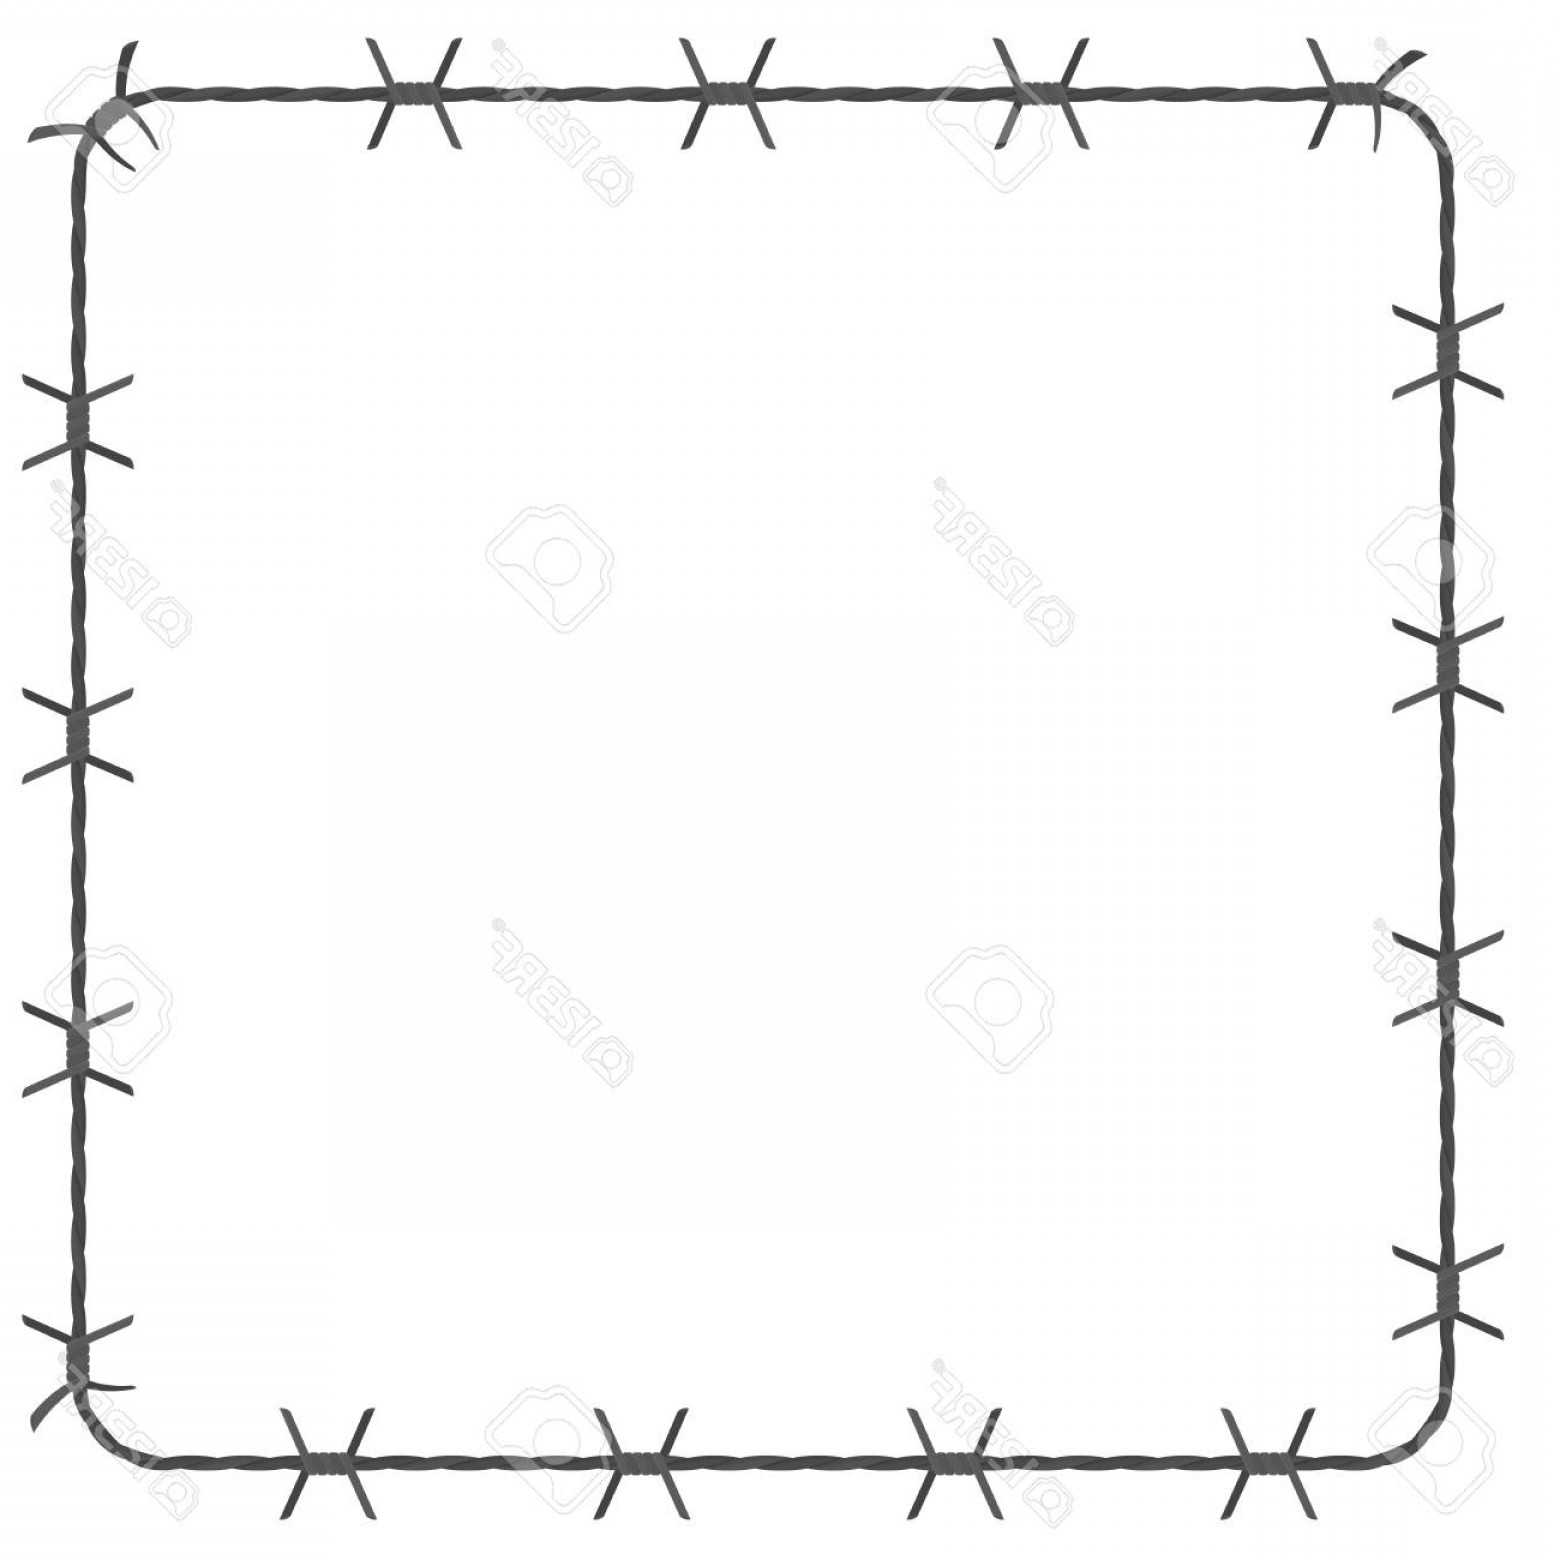 Barbed wire tornado clipart graphic freeuse library Photostock Vector Barbed Wire Square Border Vector Illustration ... graphic freeuse library